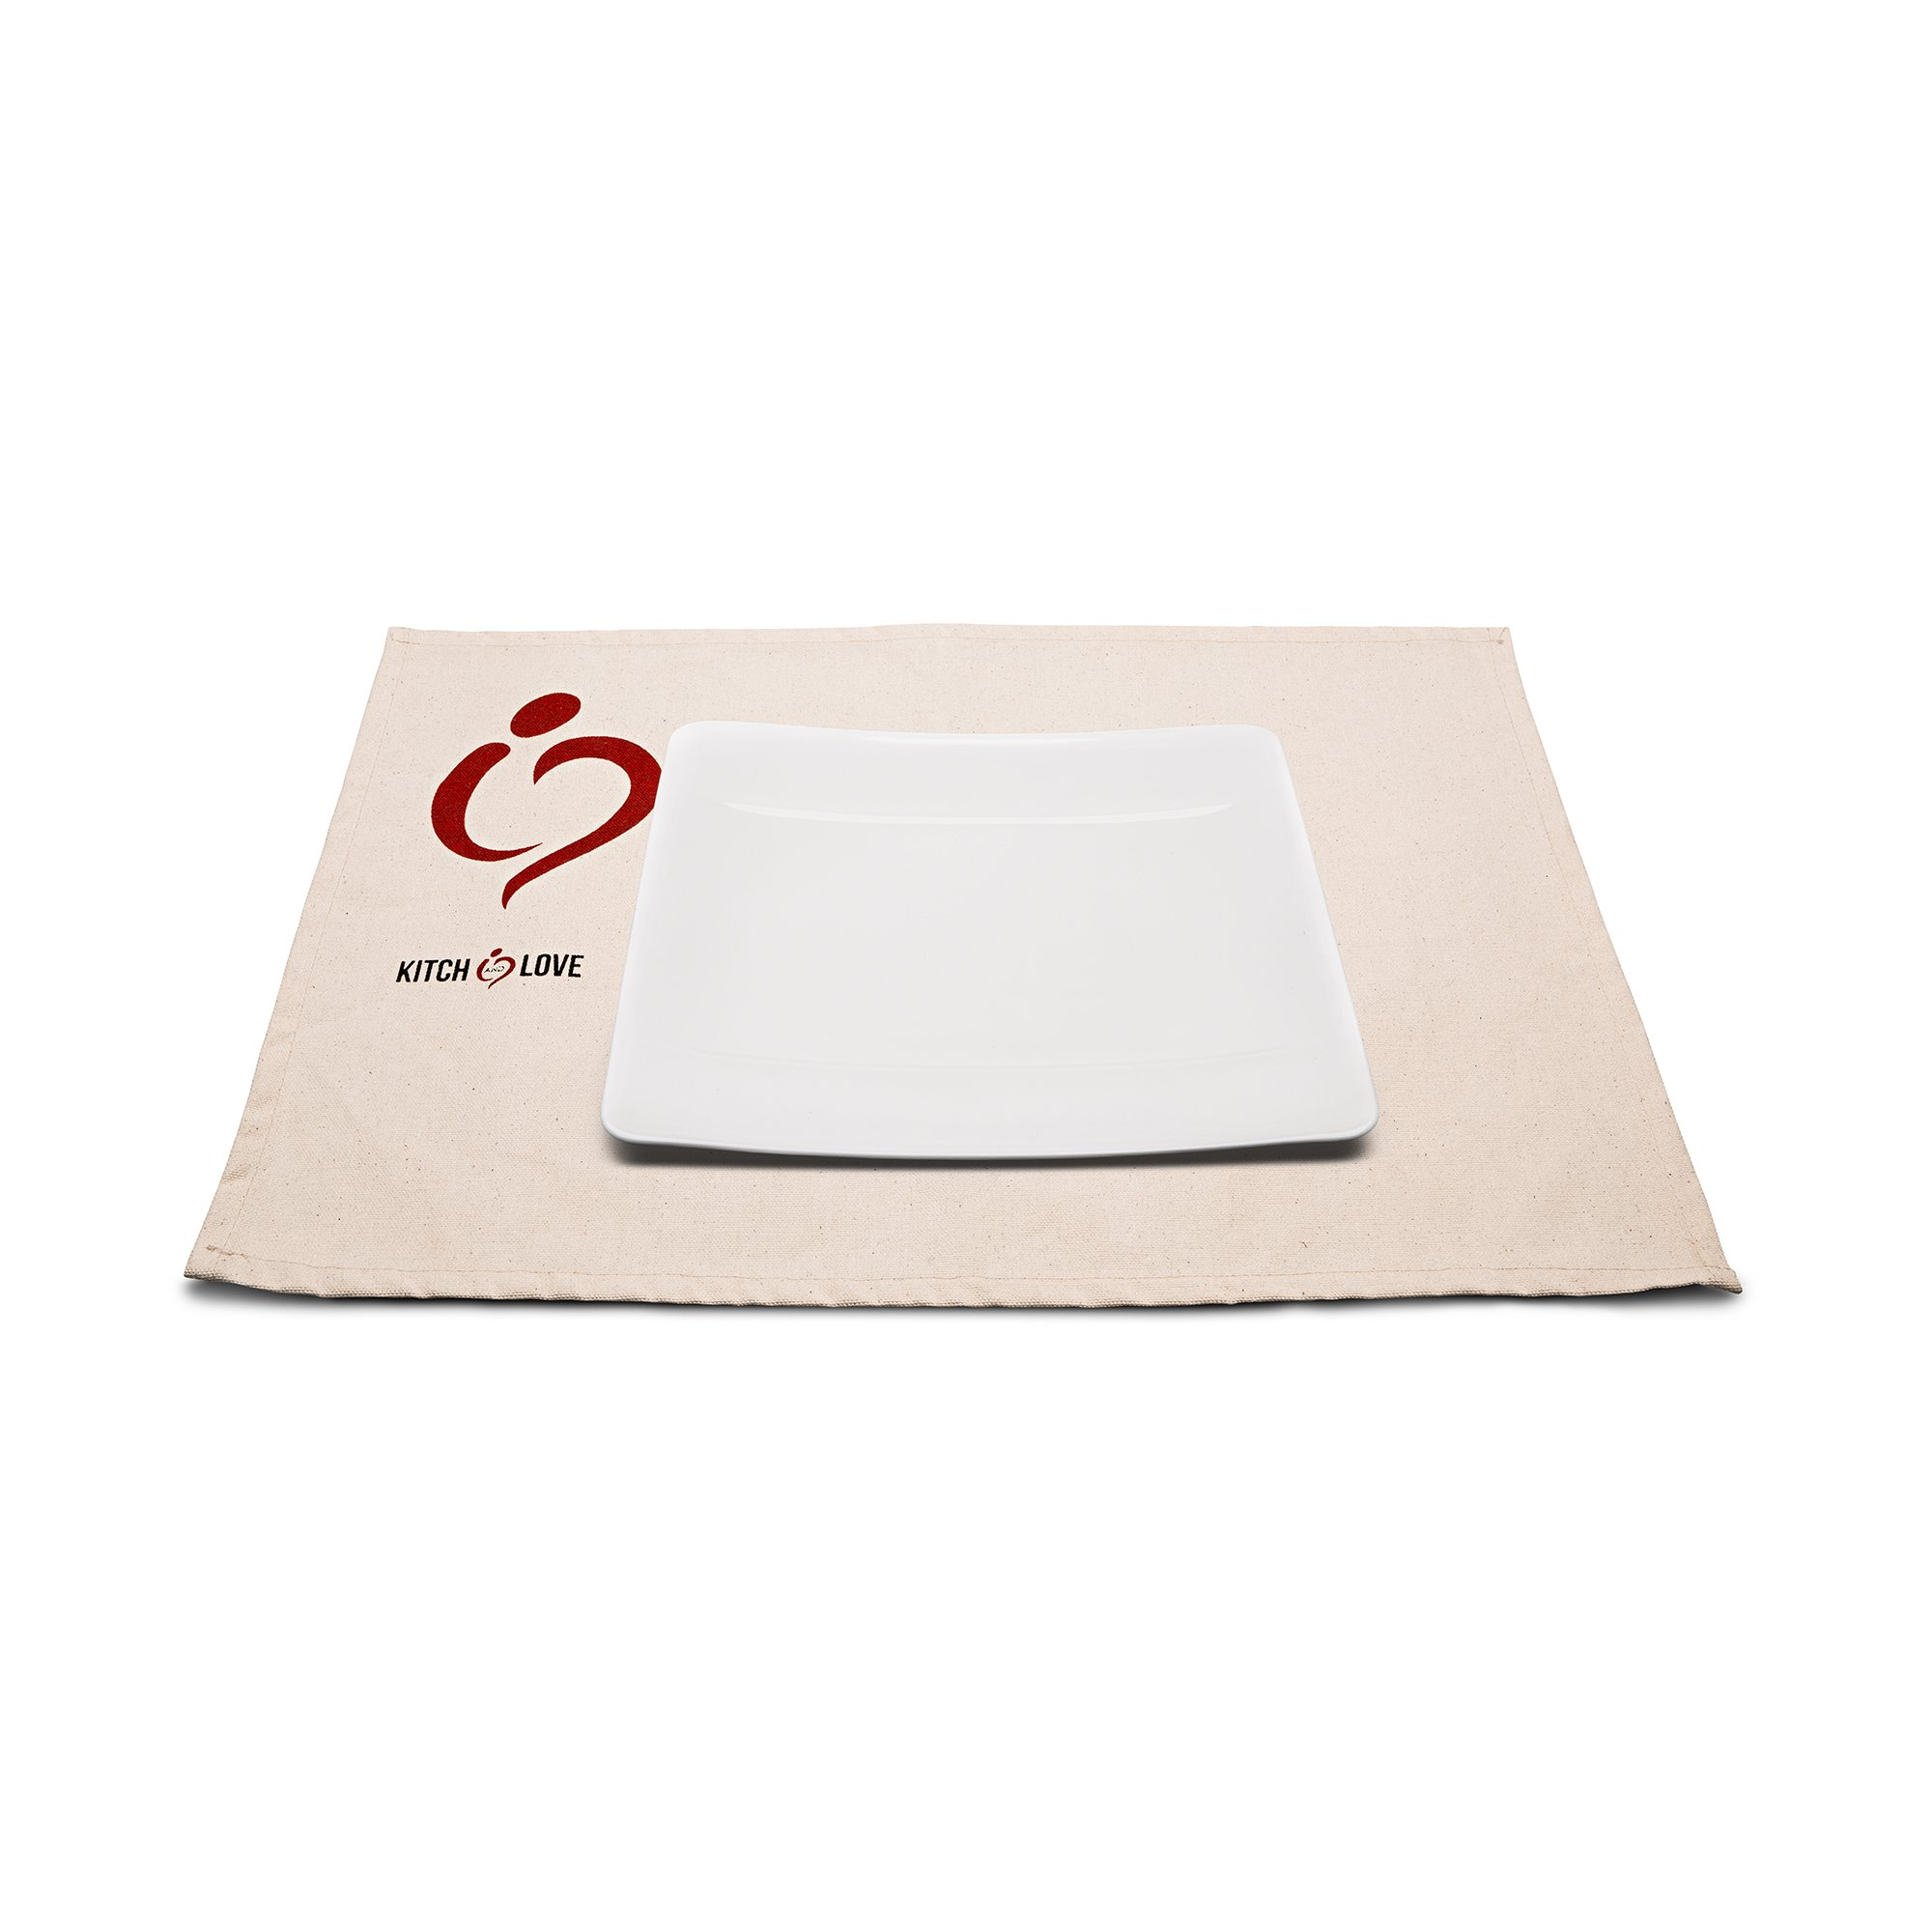 Linge de table en canvas avec logo